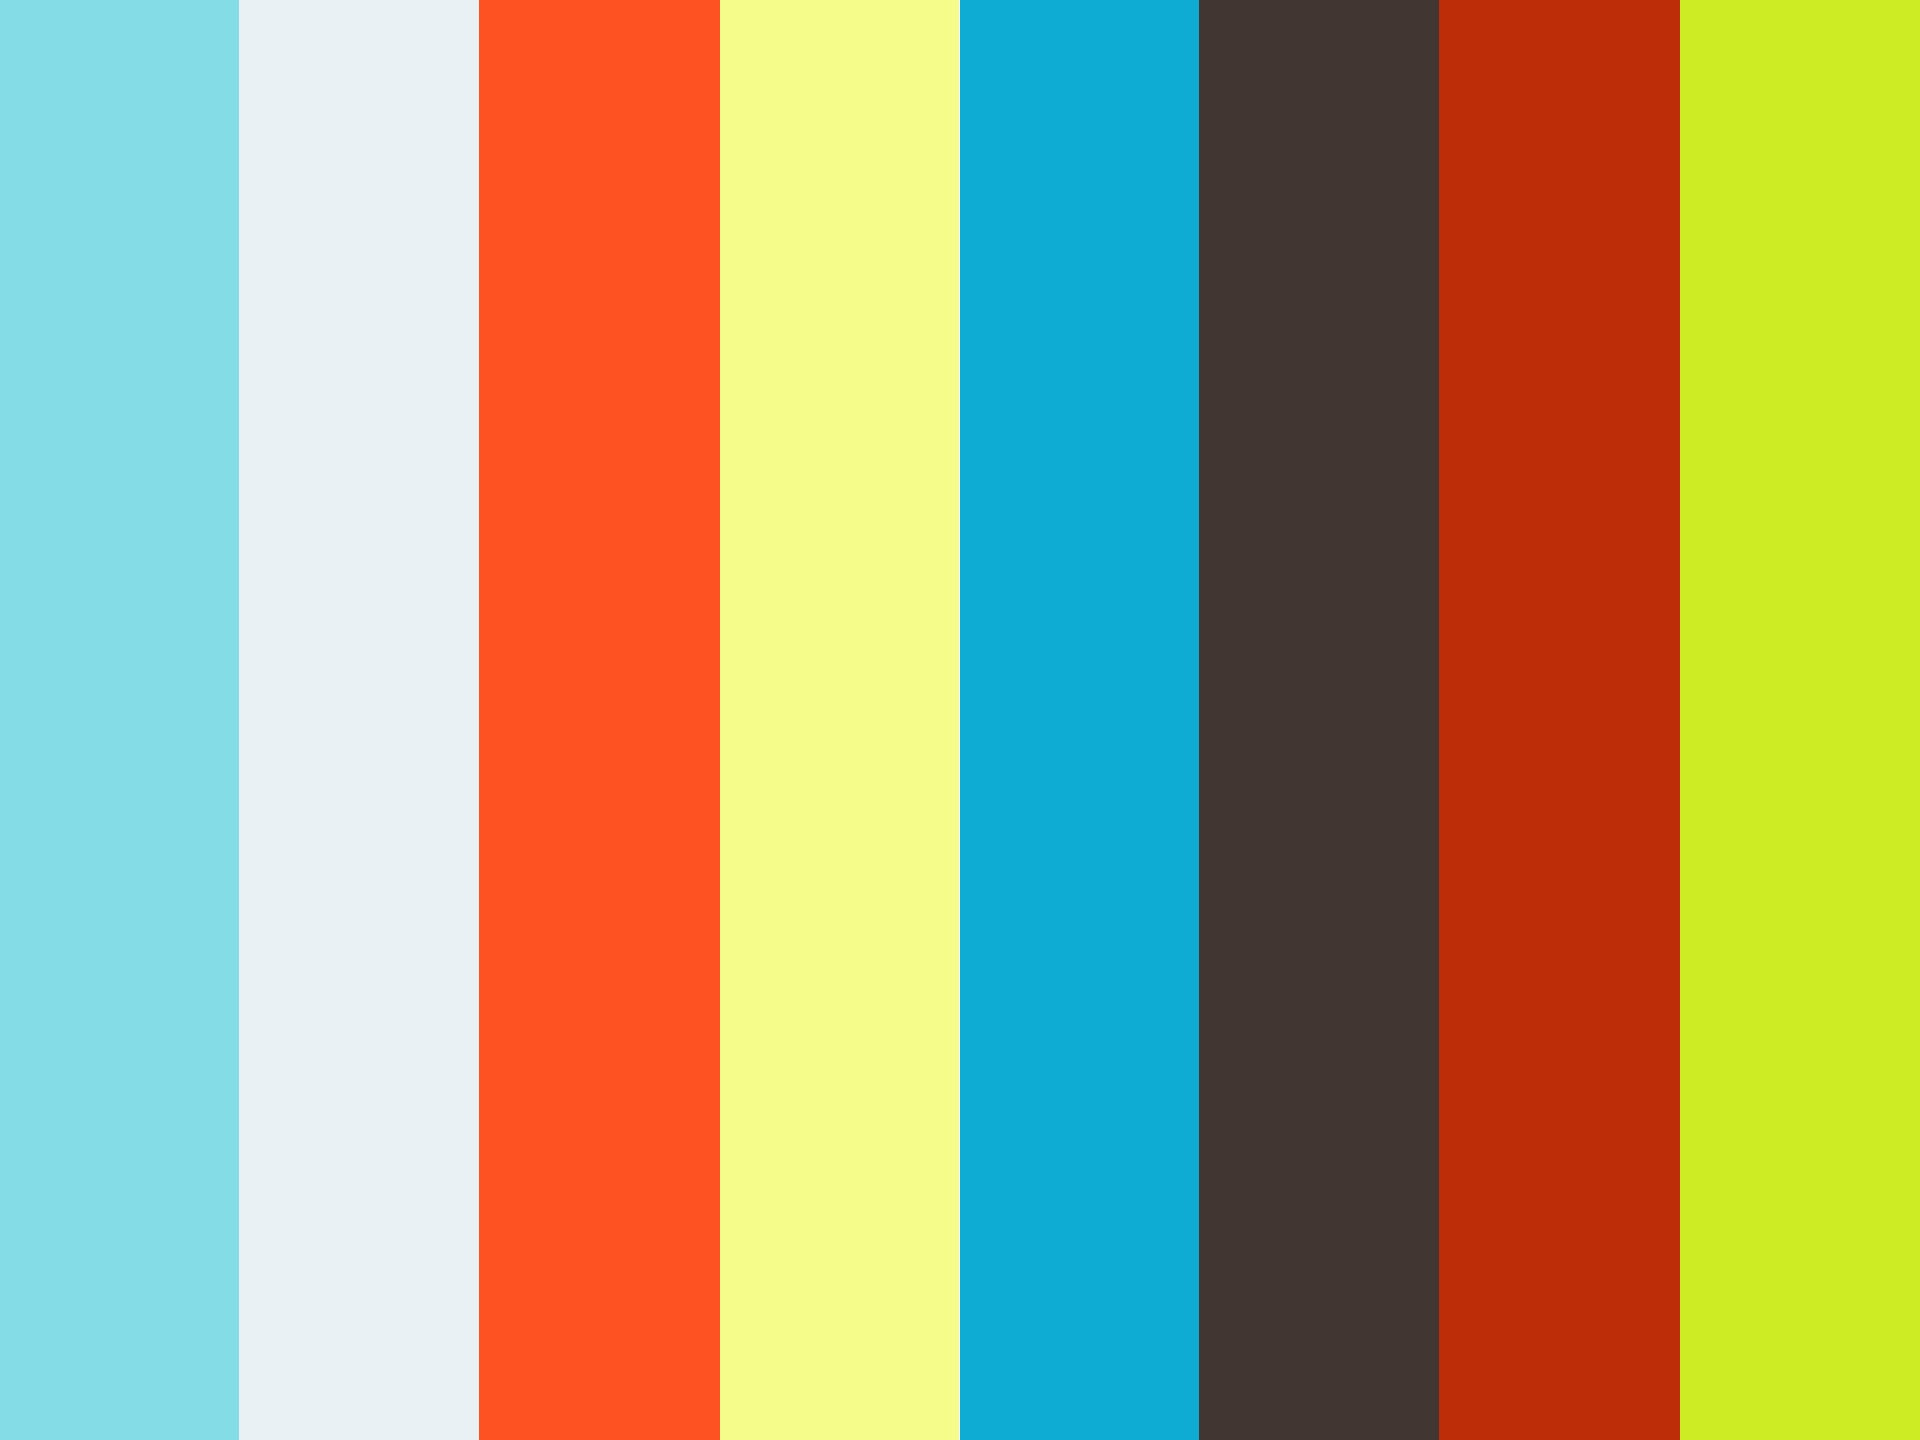 Management & Outcome of Local Recurrence After Transanal Endoscopic Microsurgery for Rectal Cancer 2011